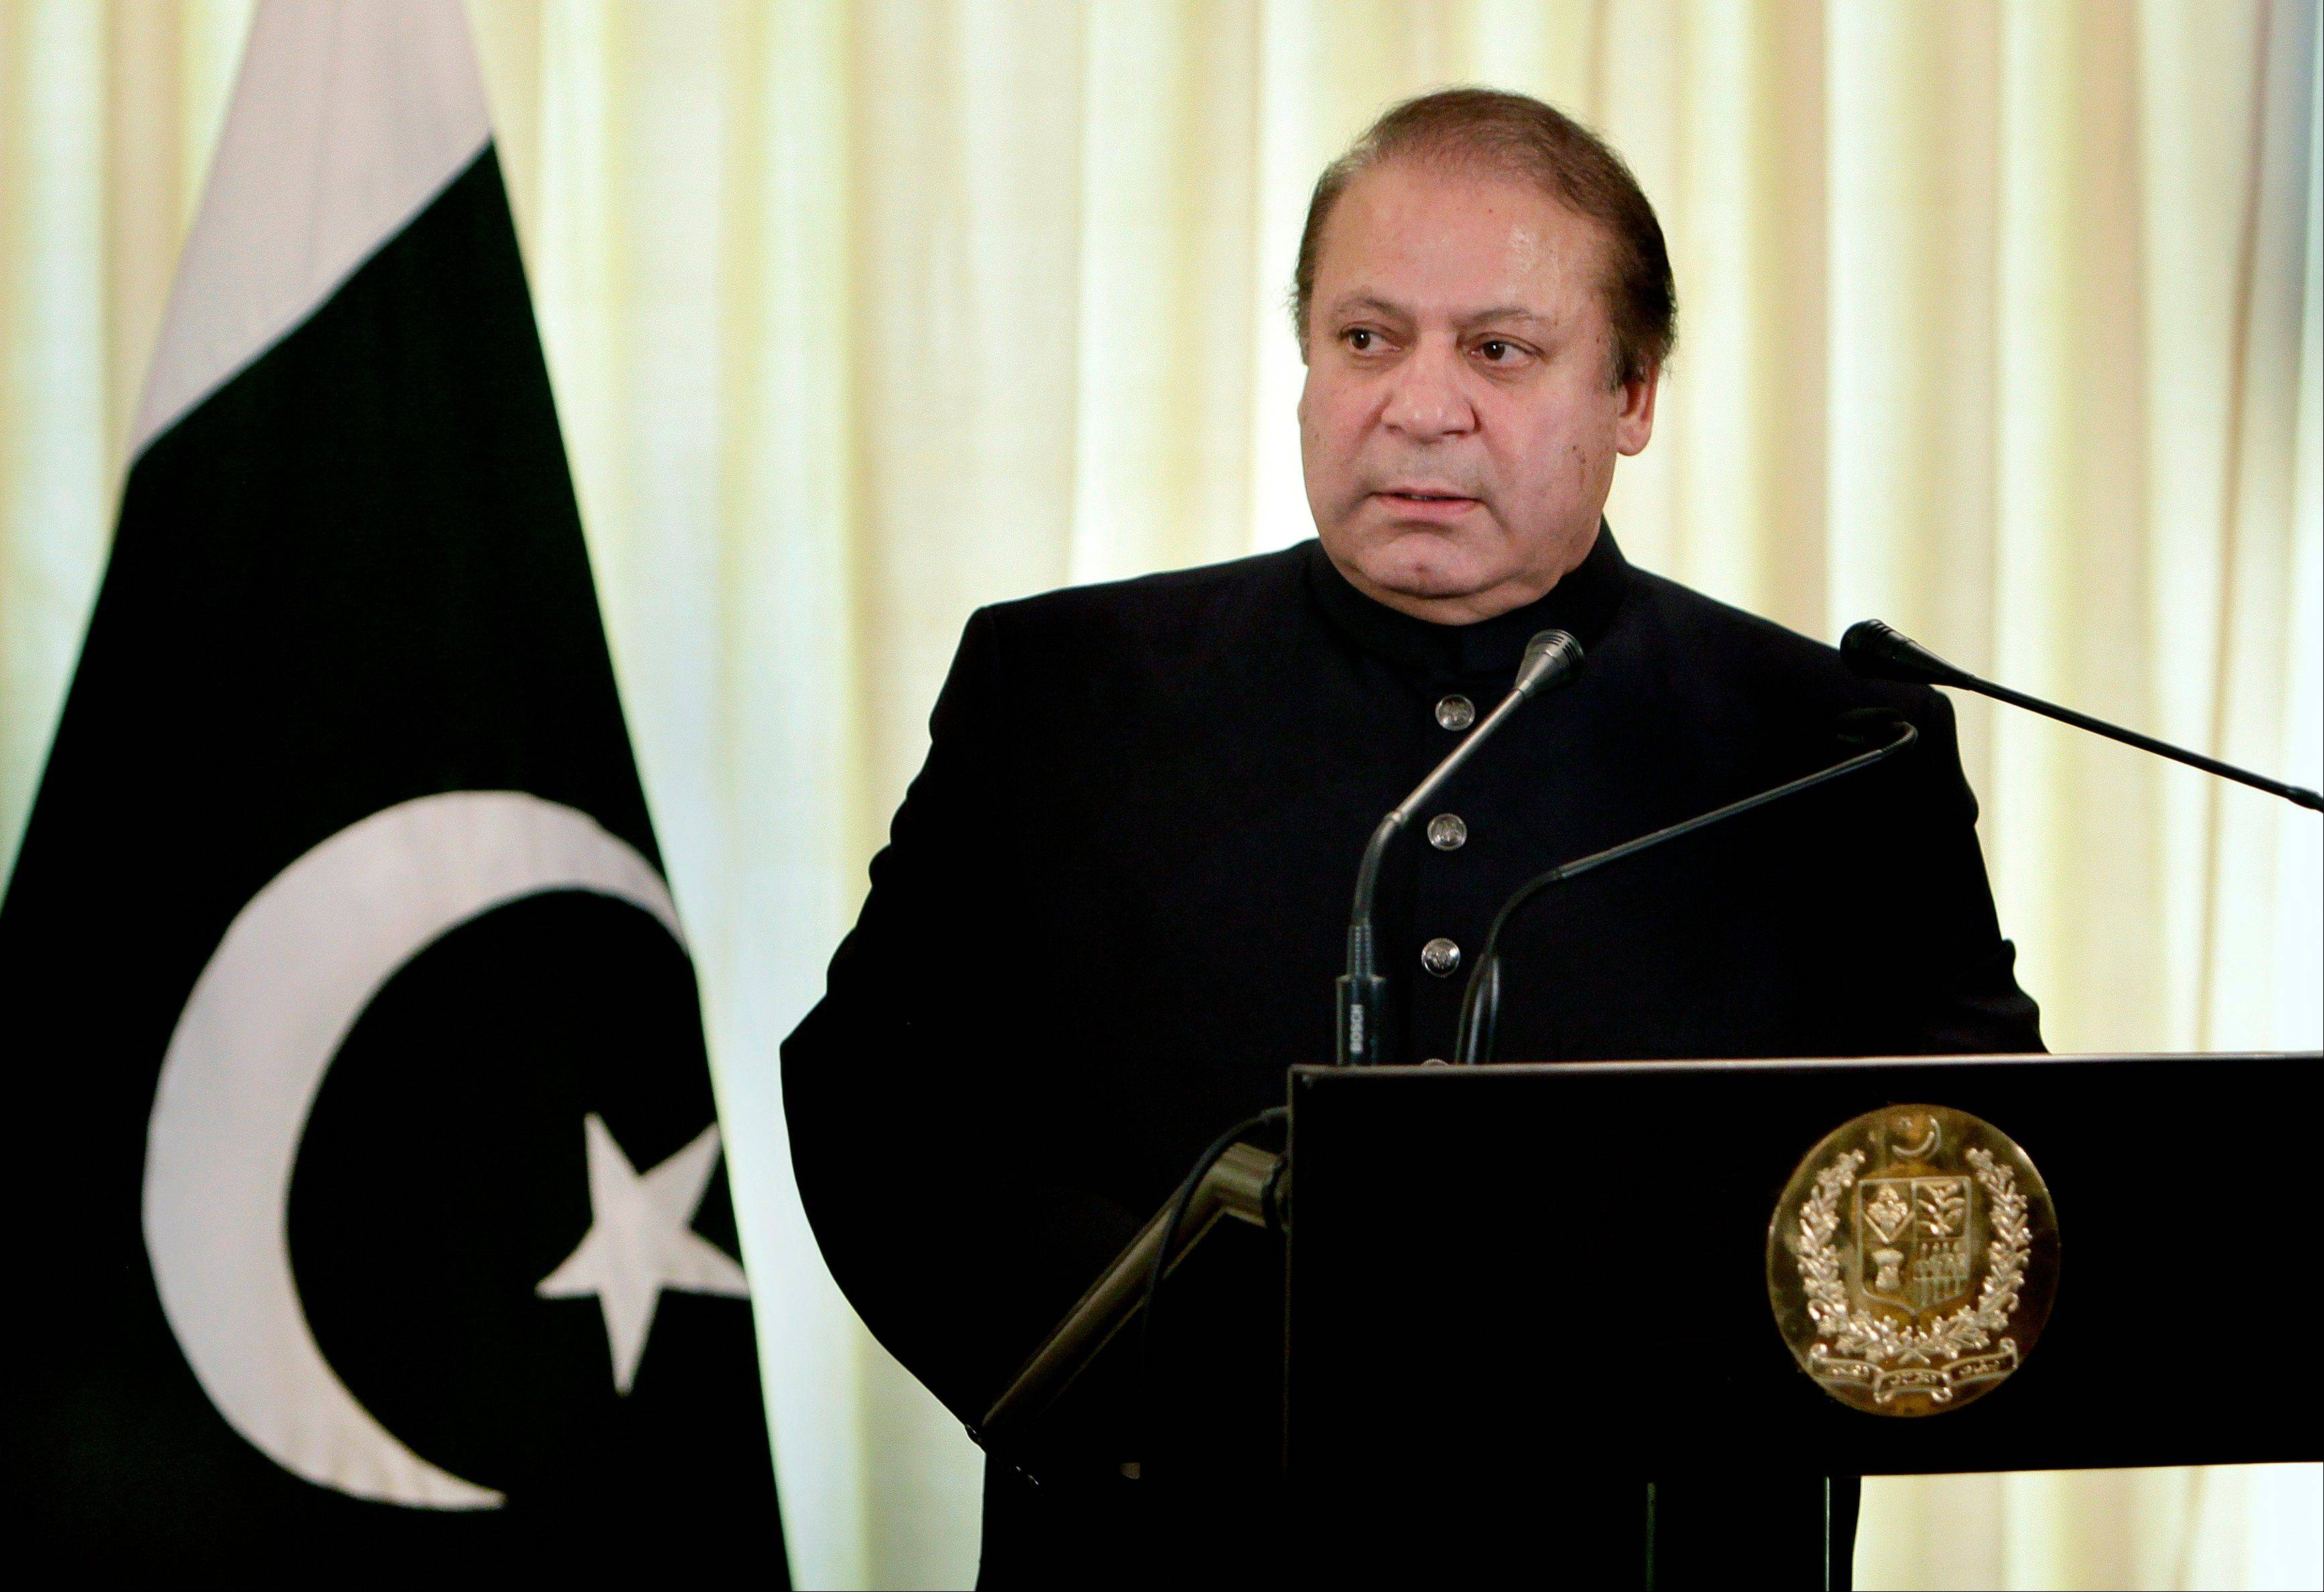 Associated Press/Aug. 26, 2013Pakistani Prime Minister Nawaz Sharif pauses during a joint press conference in Islamabad, Pakistan, with Afghan President Hamid Karzai.